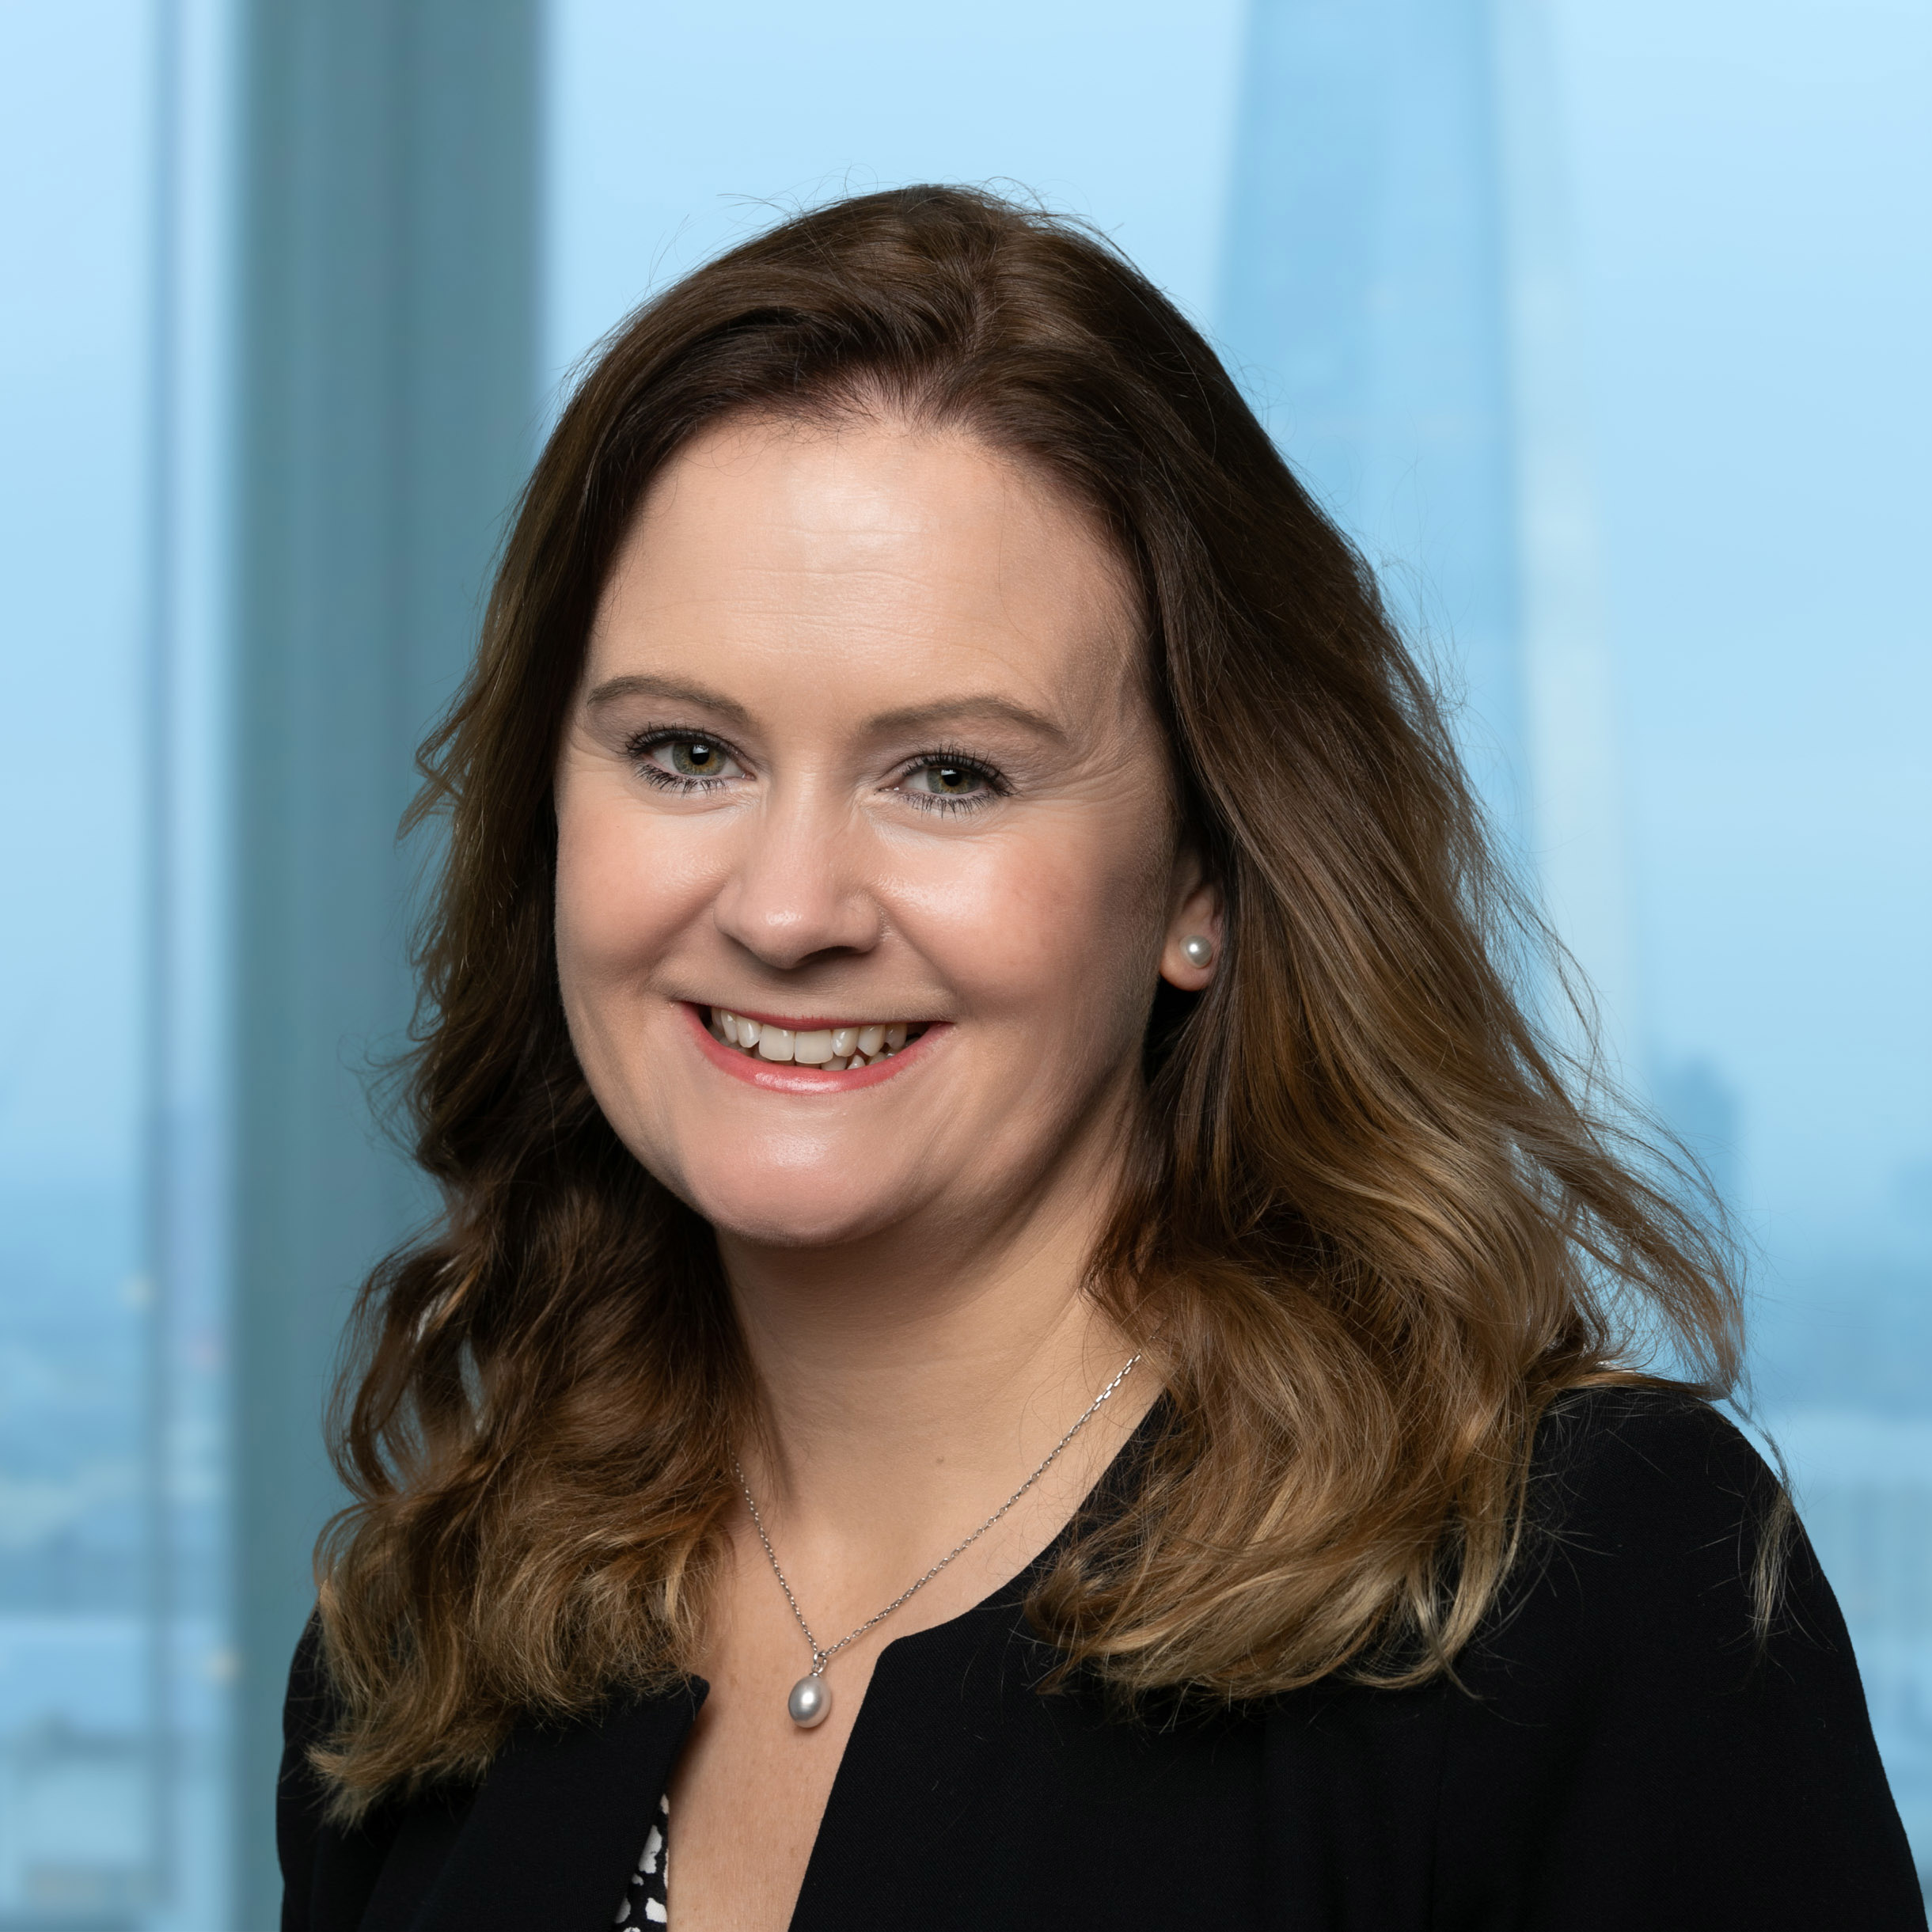 Dr Alice Kirby - Clinical Principal, Health Consulting at AccentureRead Biography